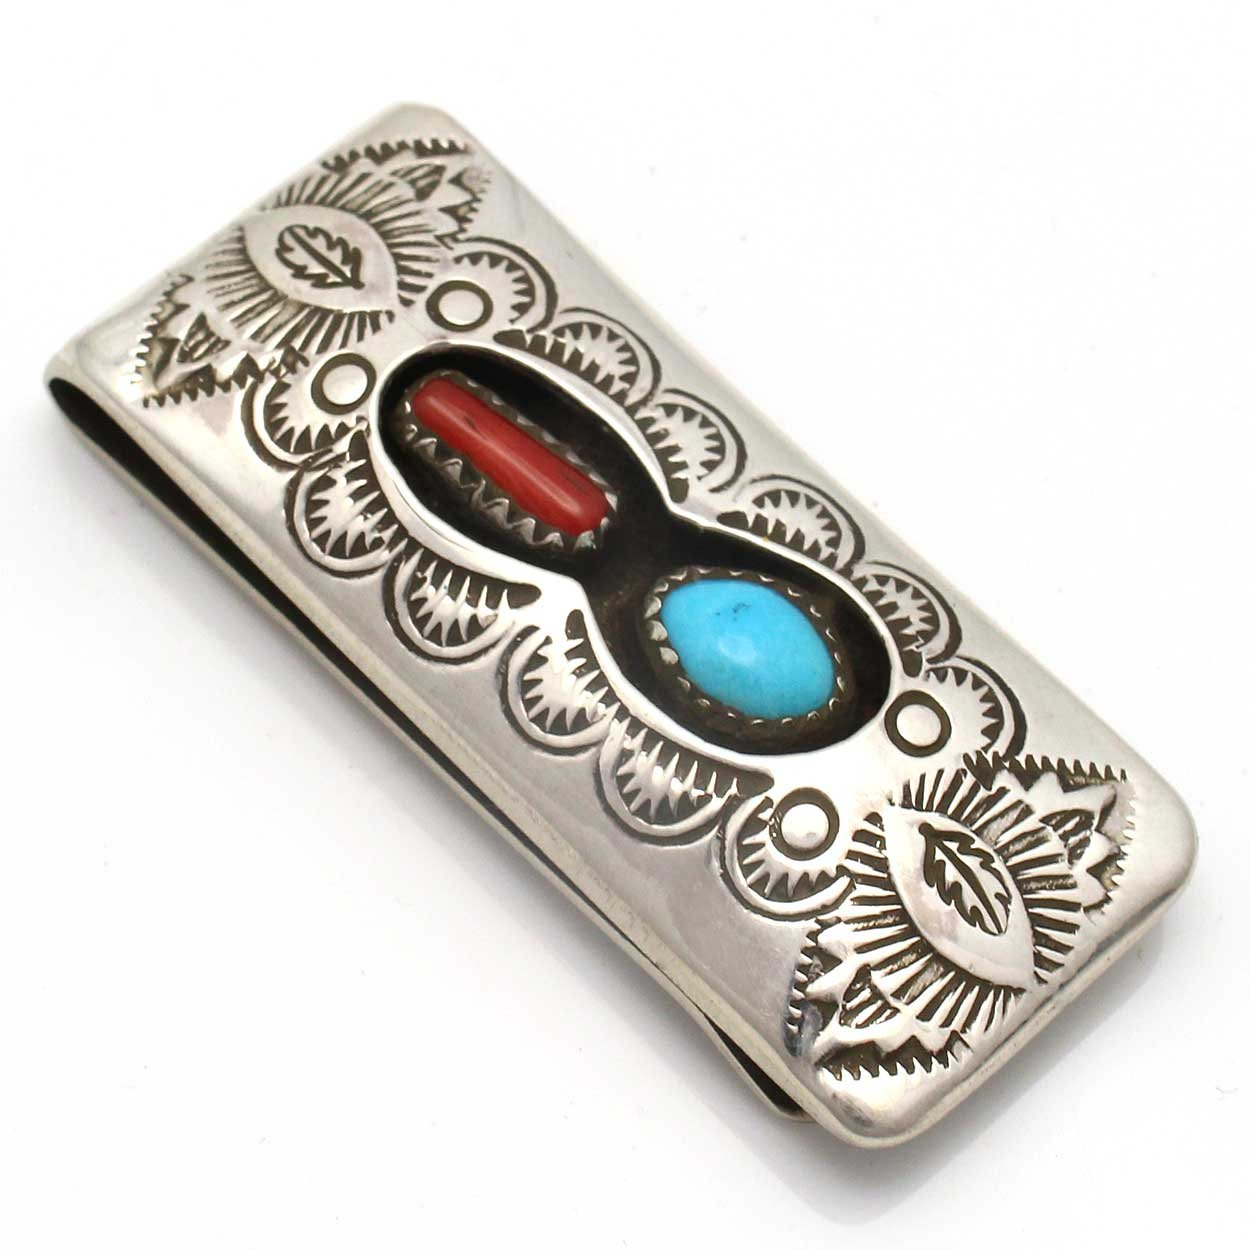 Stamped Turquoise & Coral Money Clip by Skeets